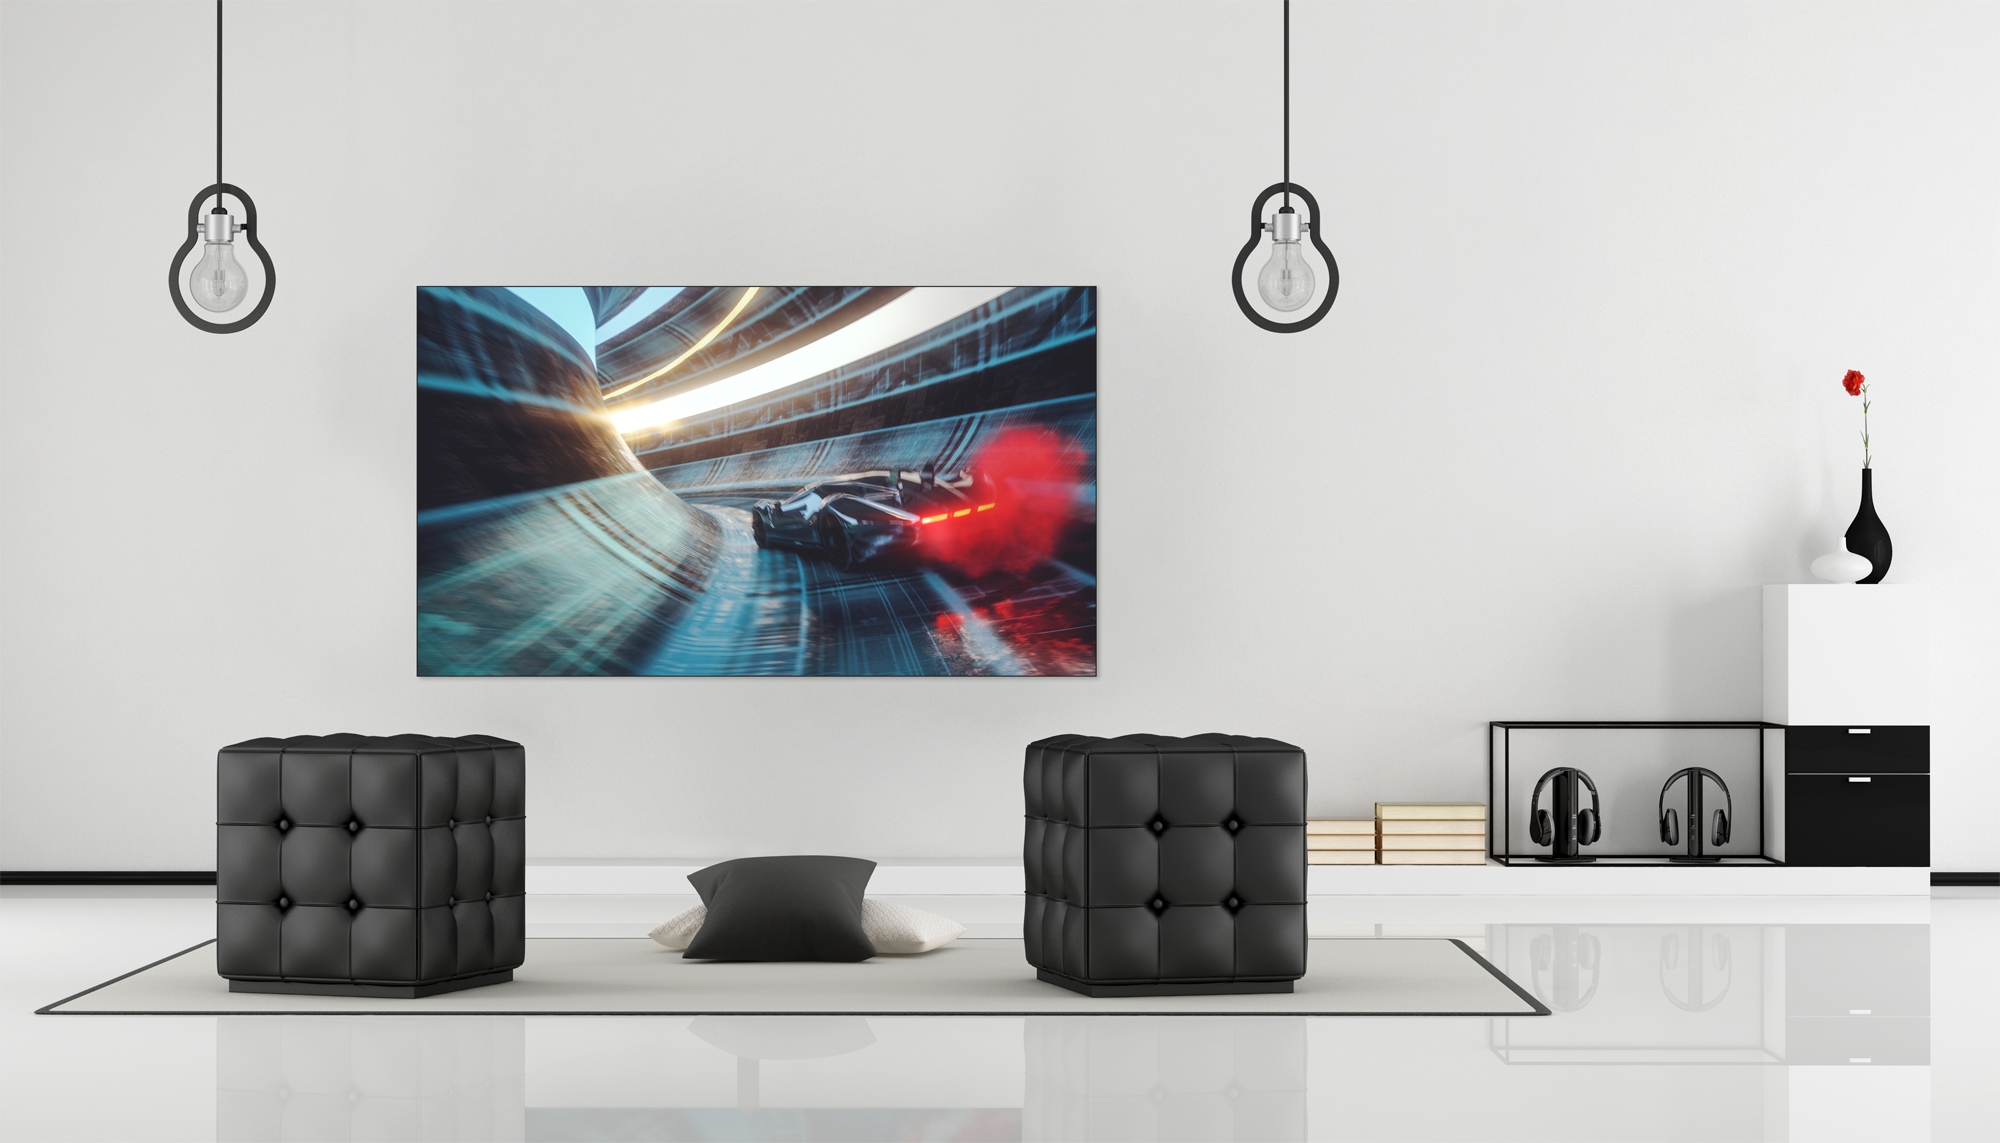 Lg 4k Oled Tv A Necessity For Your Home Entertainment System Collider Collider